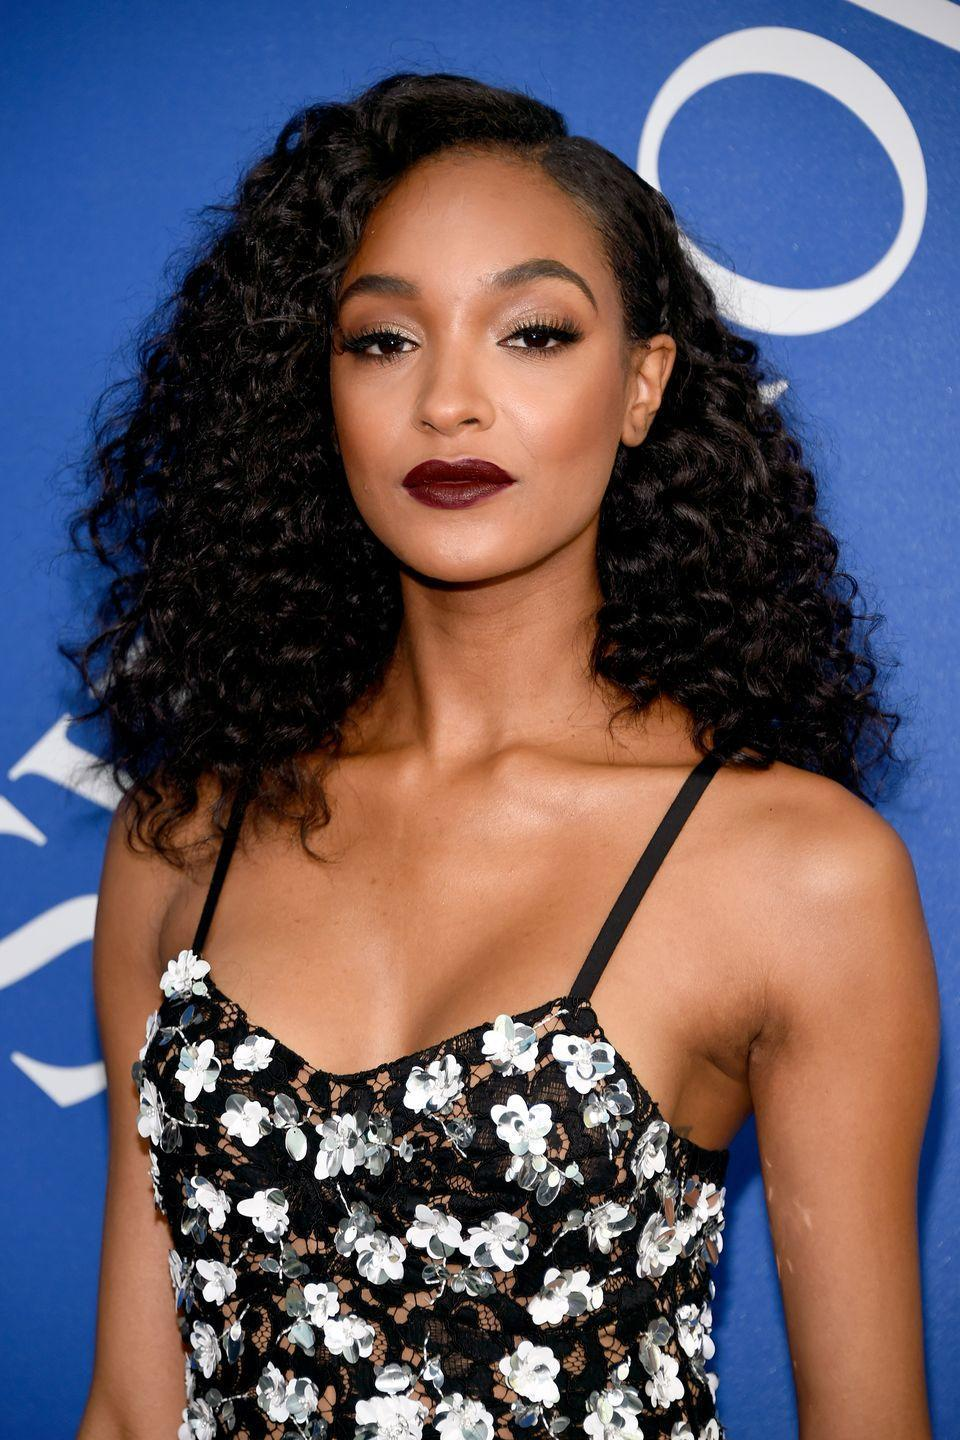 """<p>Ensure your curls look healthy like Jourdan Dunn's by using curl-defining products such as Color Wow's <a href=""""https://www.colorwowhair.com/uk/dream-coat-curly.html"""" rel=""""nofollow noopener"""" target=""""_blank"""" data-ylk=""""slk:Dream Coat for Curly Hair"""" class=""""link rapid-noclick-resp"""">Dream Coat for Curly Hair</a>, £24.</p>"""